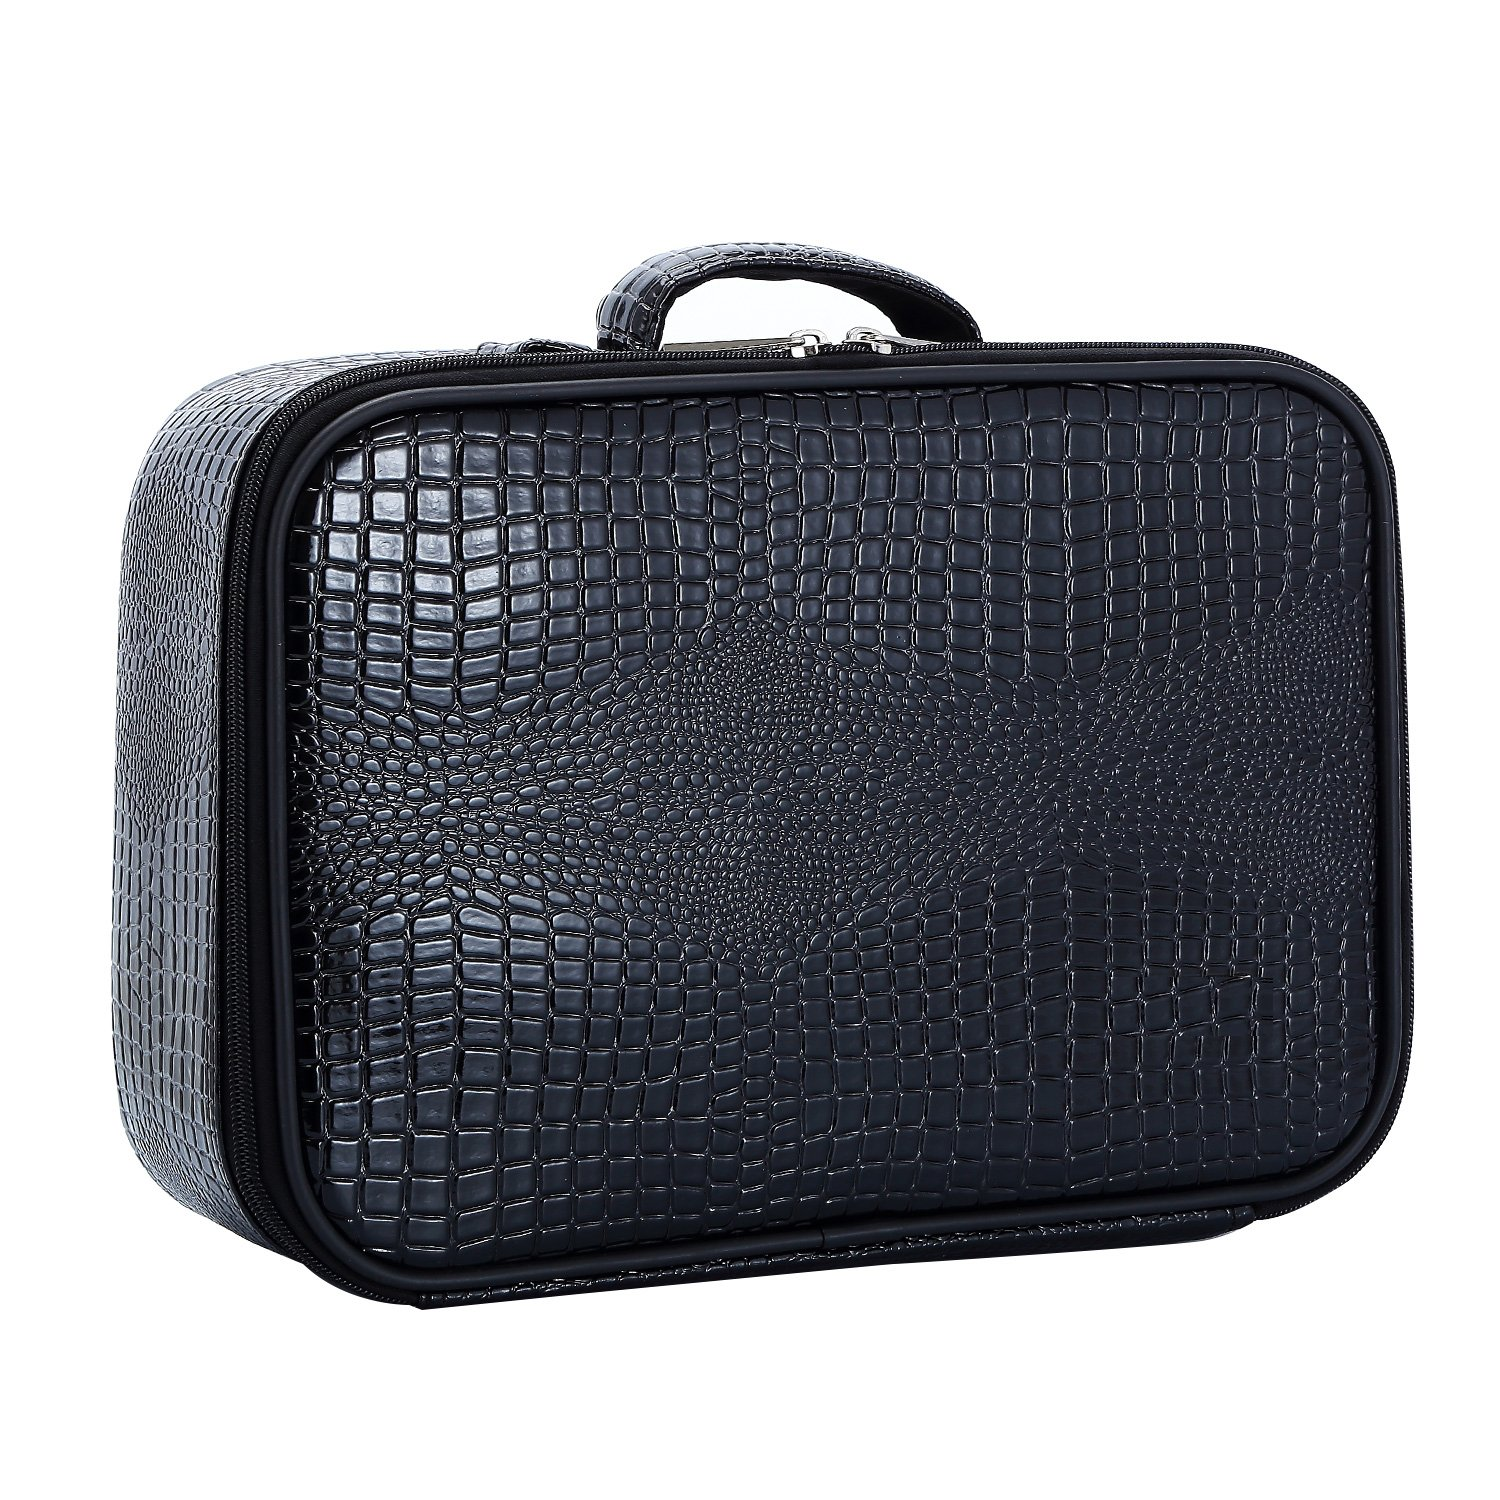 HOYOFO Hairdresser Tools Case Hair Styling Accessories Storage Bag Salon Carrying Organizer Case